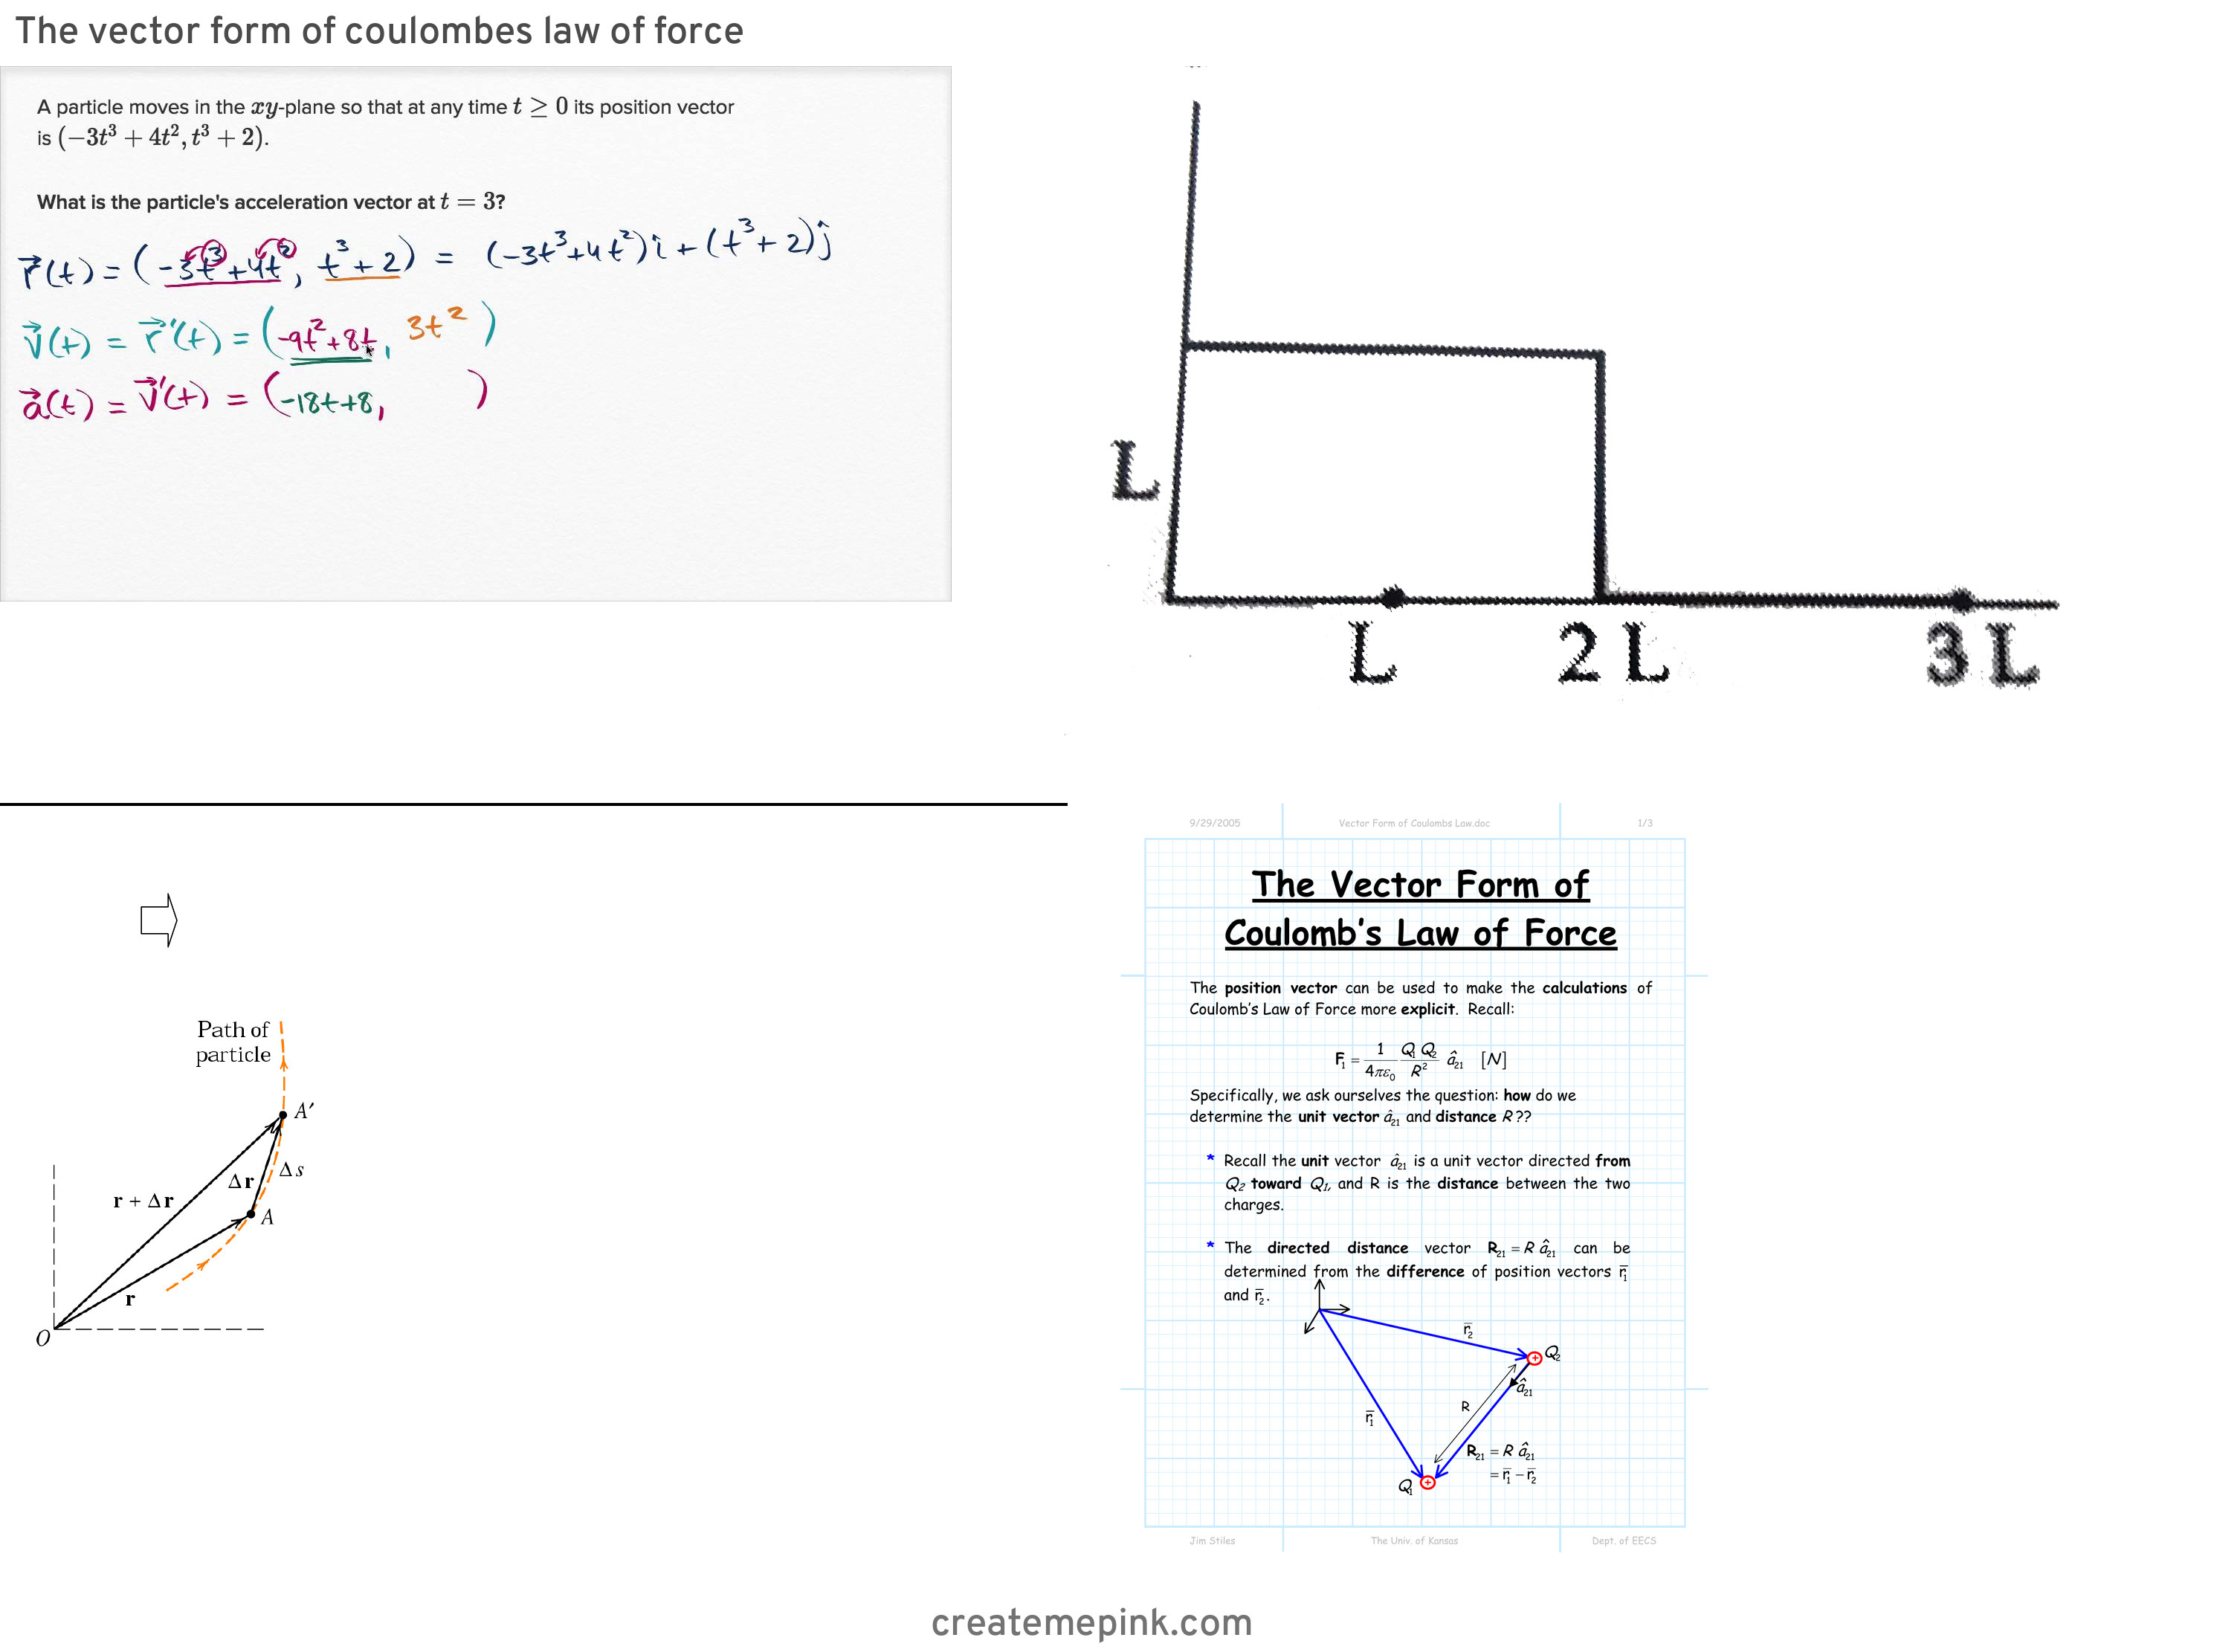 Position Vector R: The Vector Form Of Coulombes Law Of Force